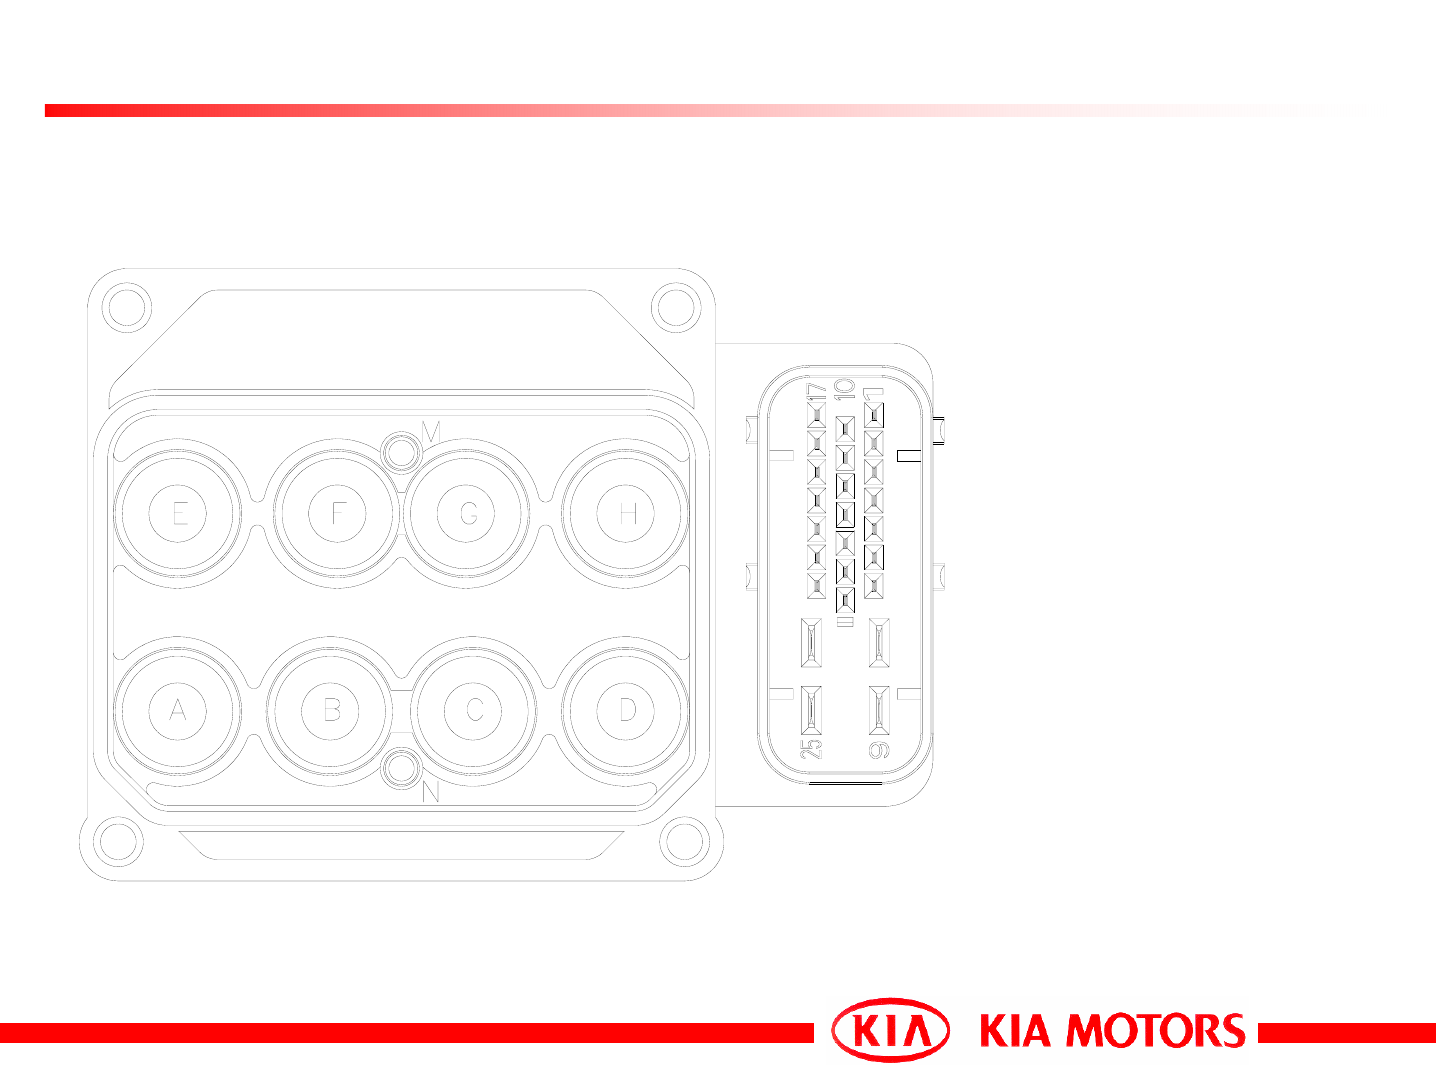 kia carens misc document electric wiring diagram pdf page 3  kia carens electrical wiring diagram #6